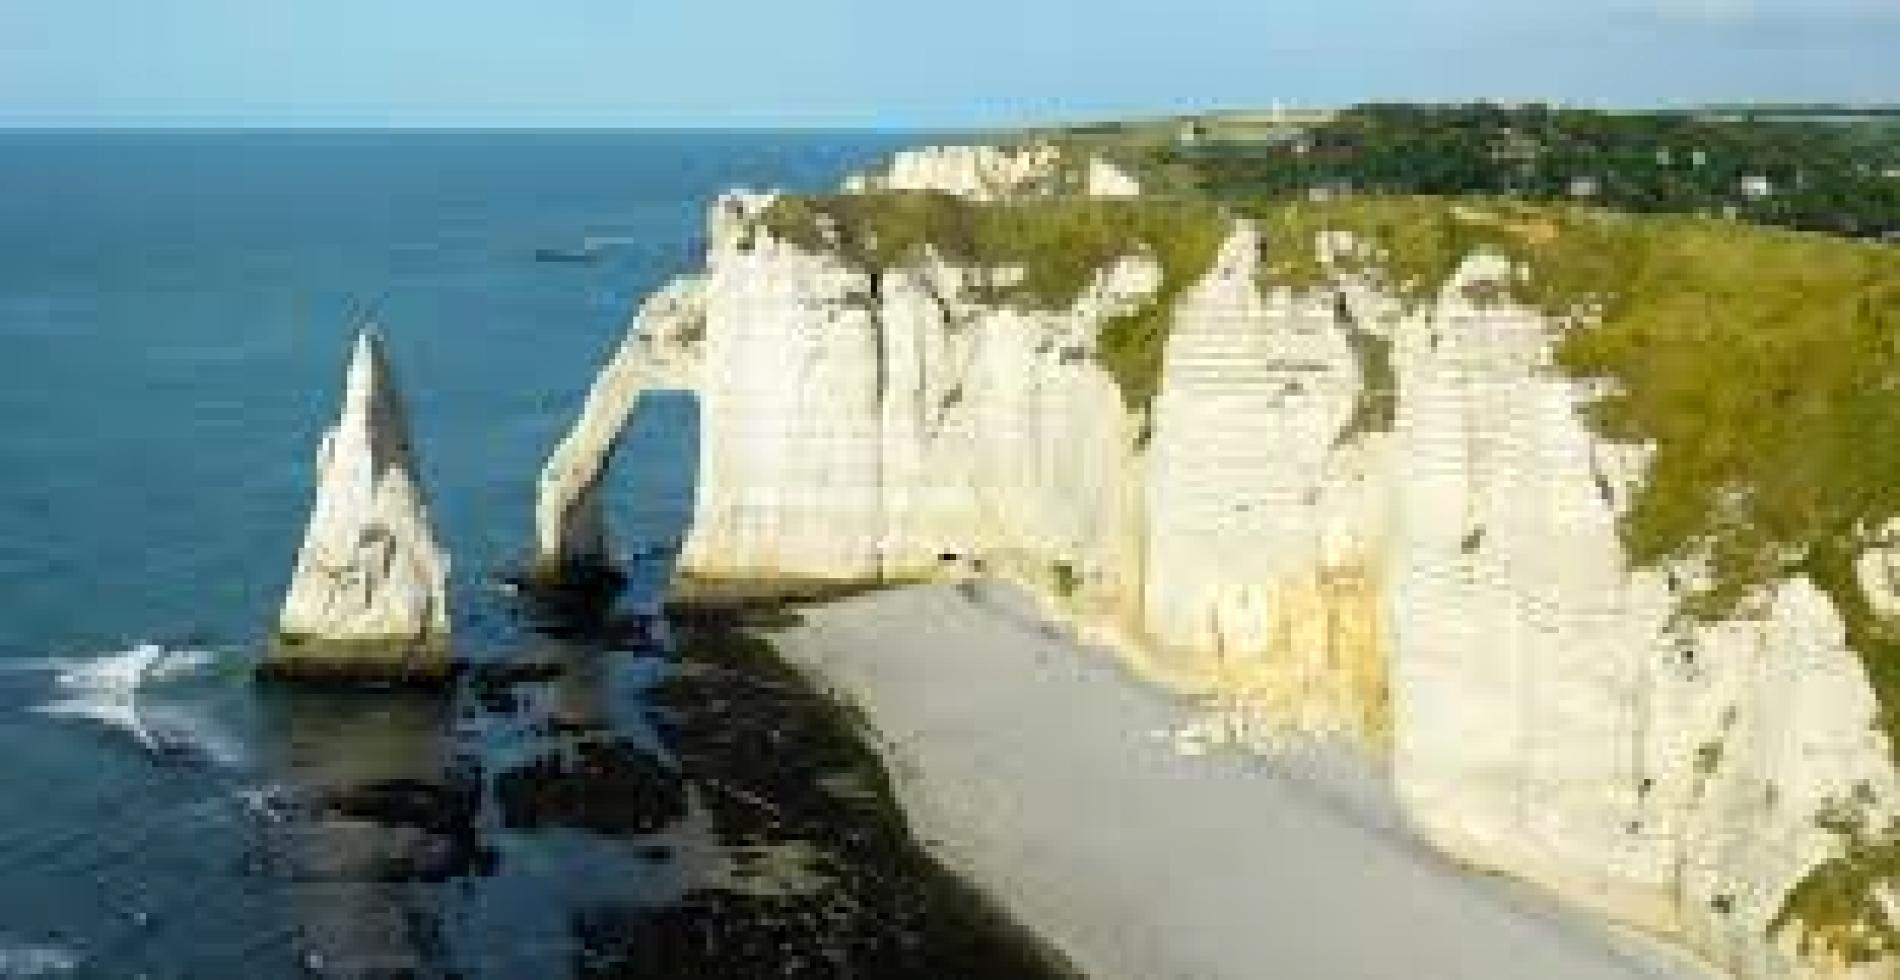 25 minutes from the town of Etretat